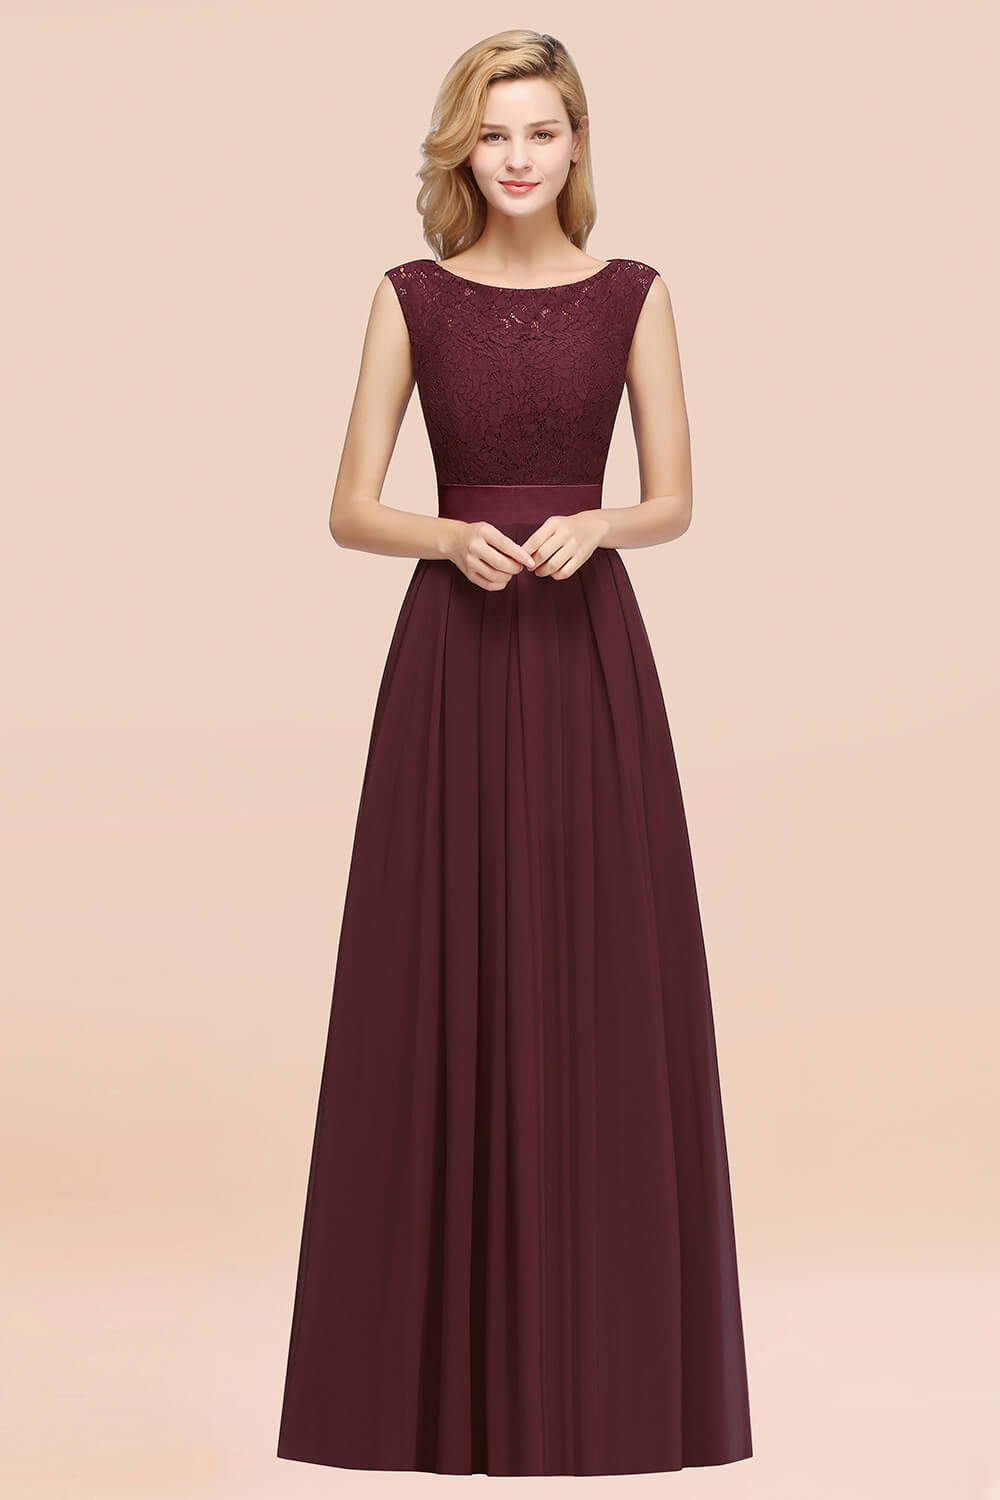 carbenet bridesmaid dress